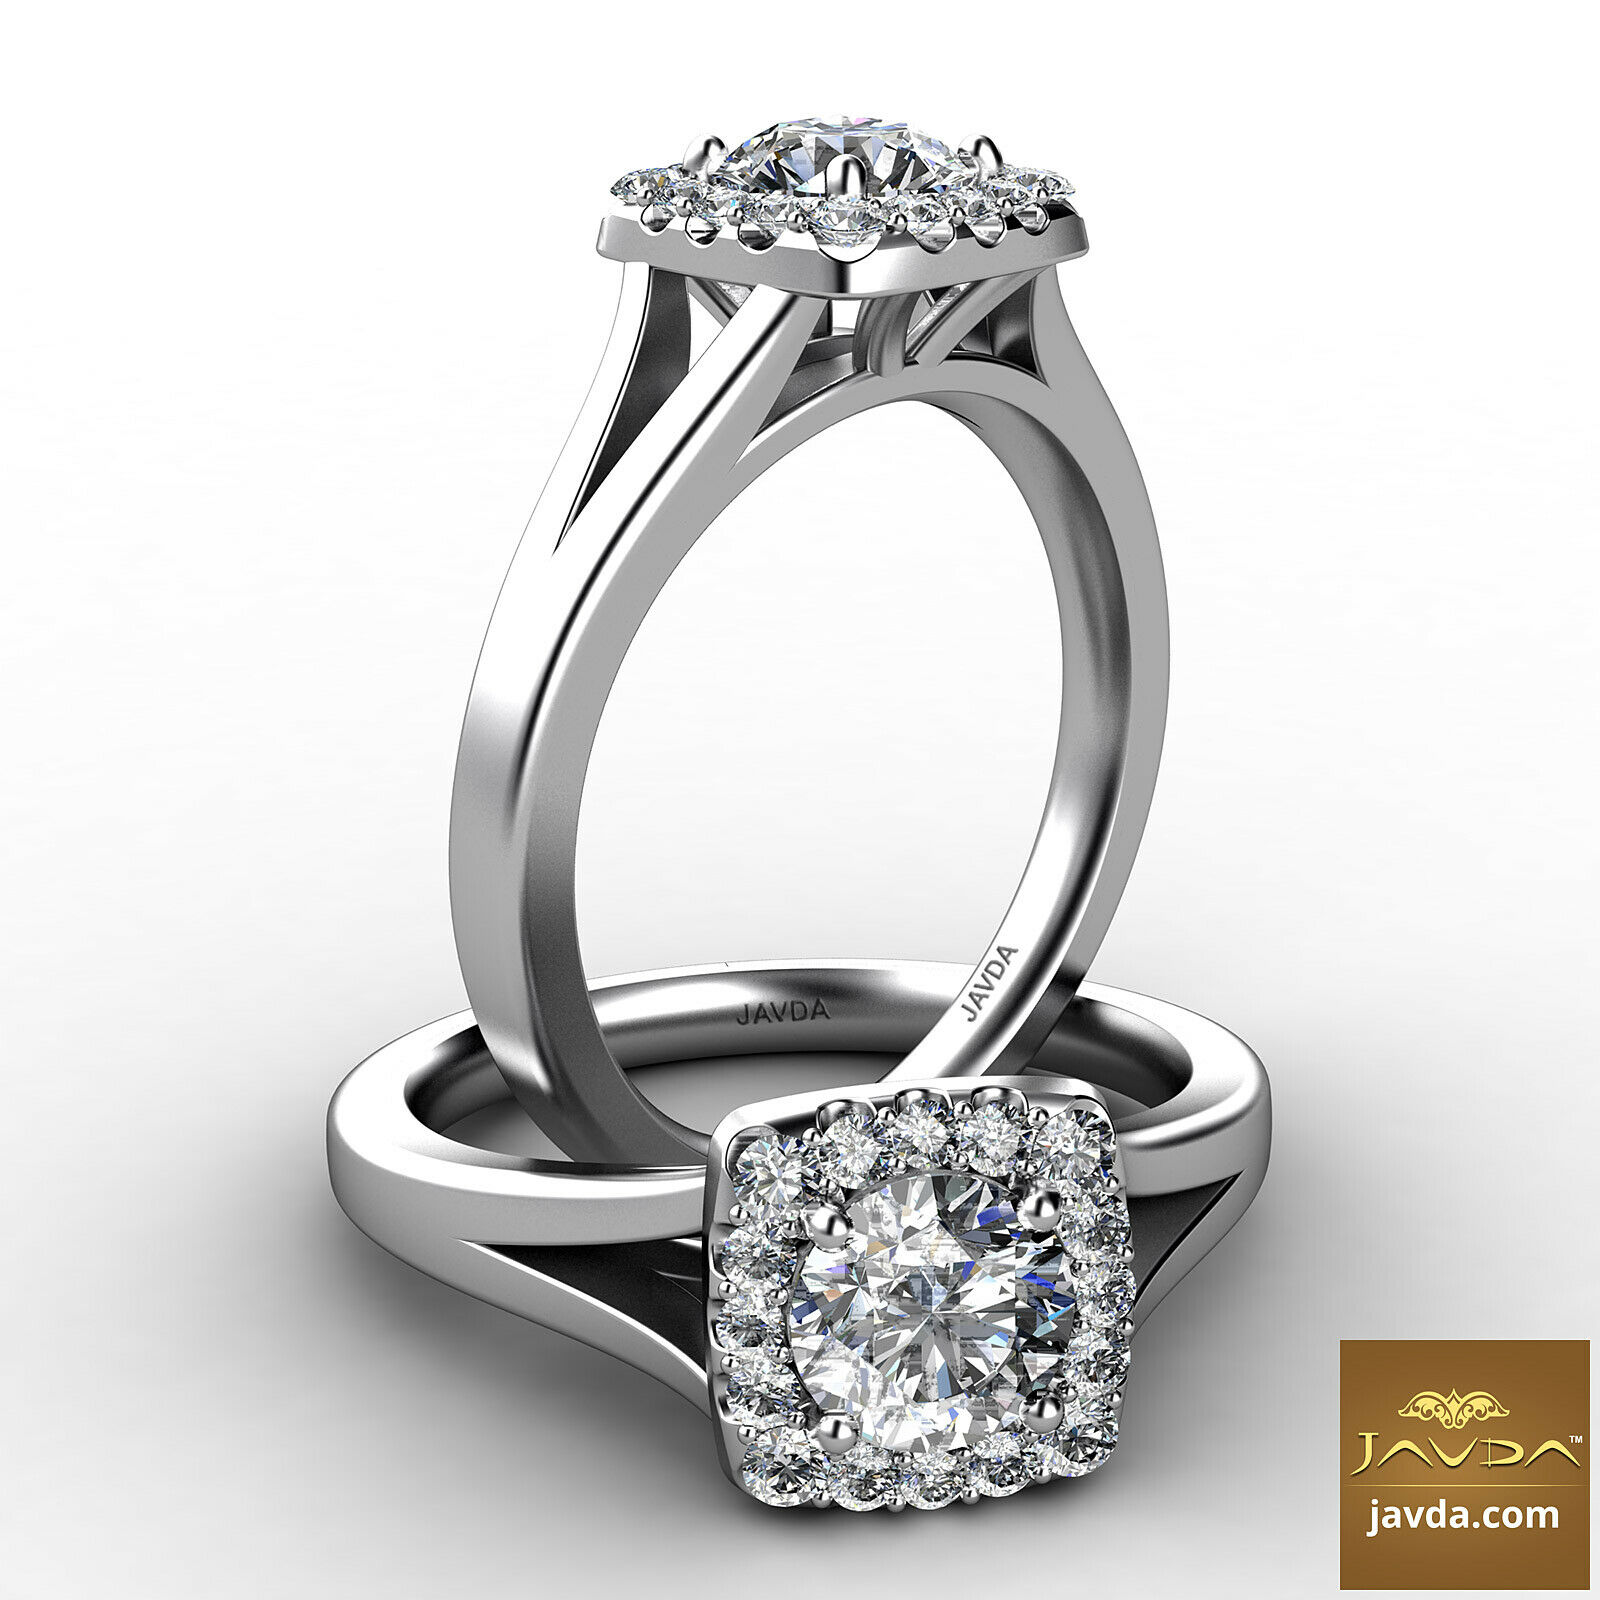 1ctw Halo Split Shank Cathedral Round Diamond Engagement Ring GIA H-VS1 W Gold